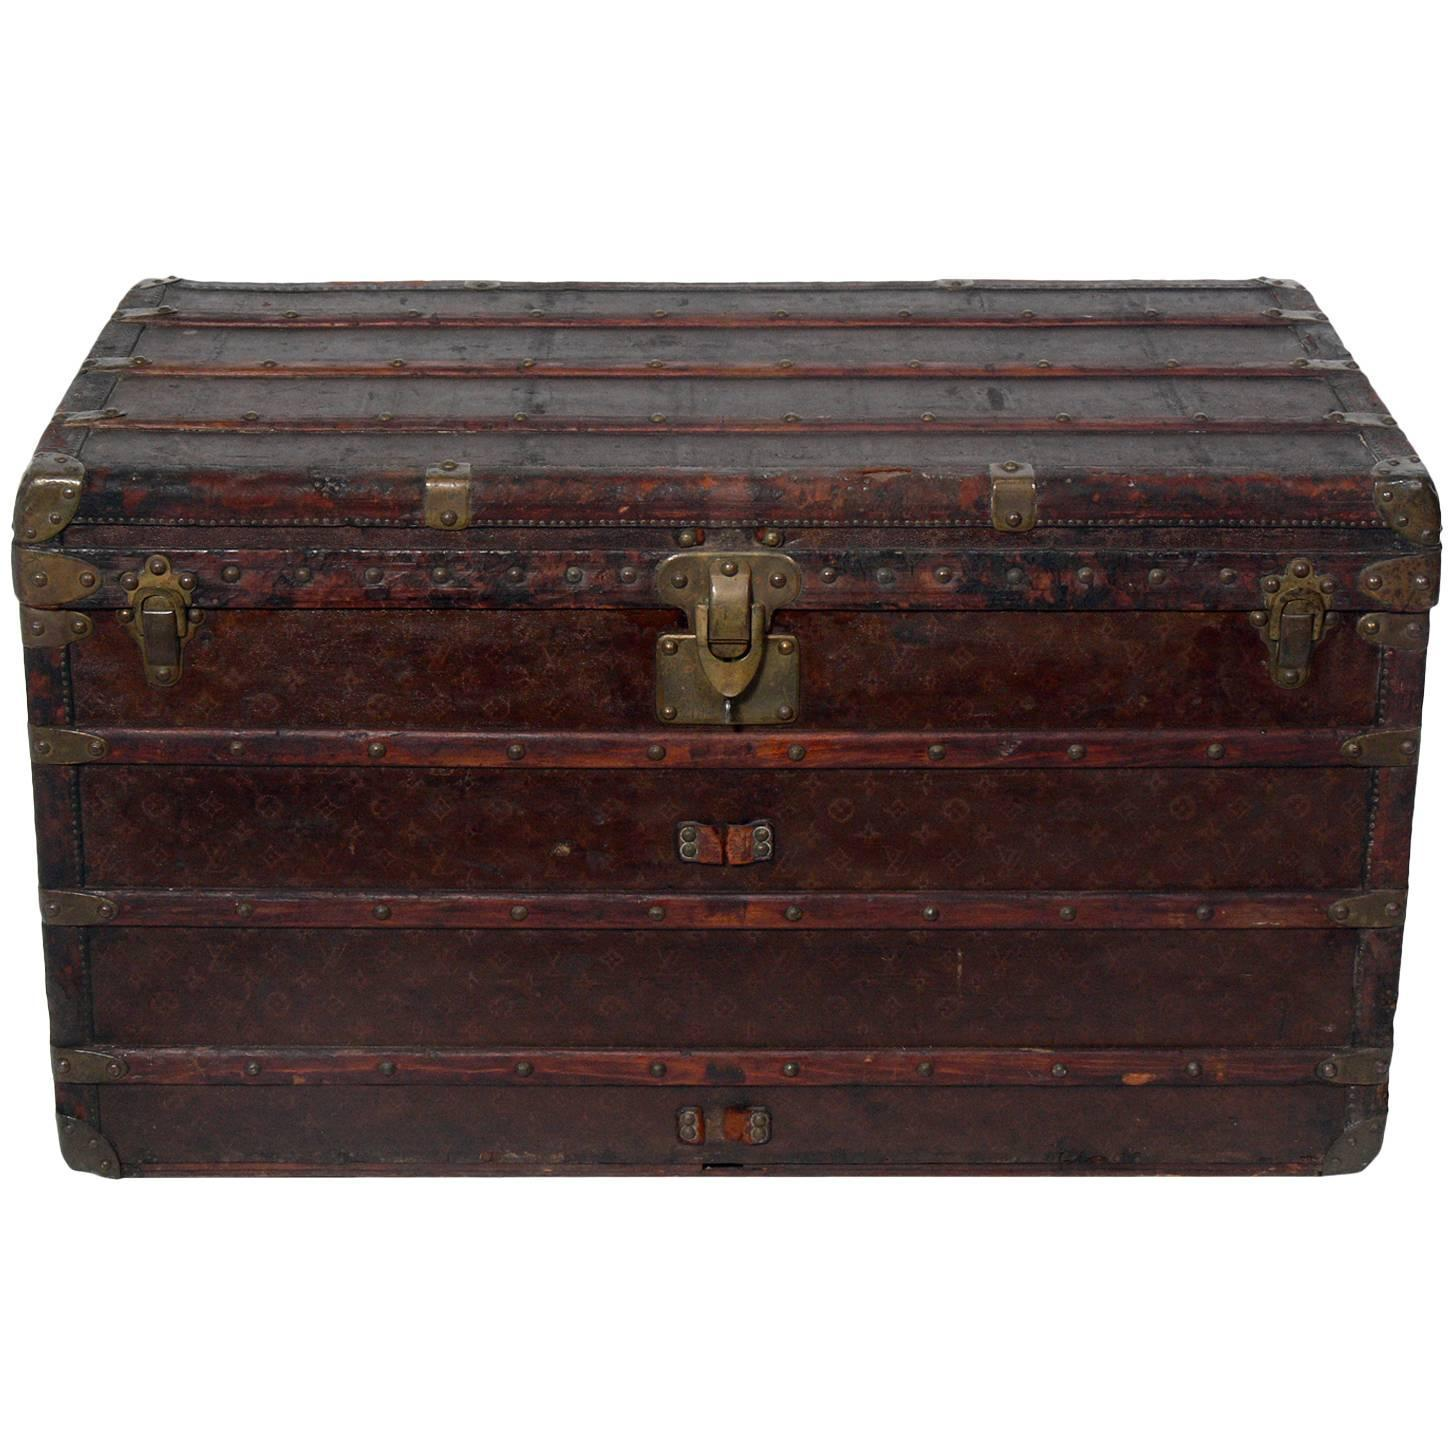 Lv Trunk Coffee Table: Louis Vuitton Wardrobe Steamer Trunk For Sale At 1stdibs